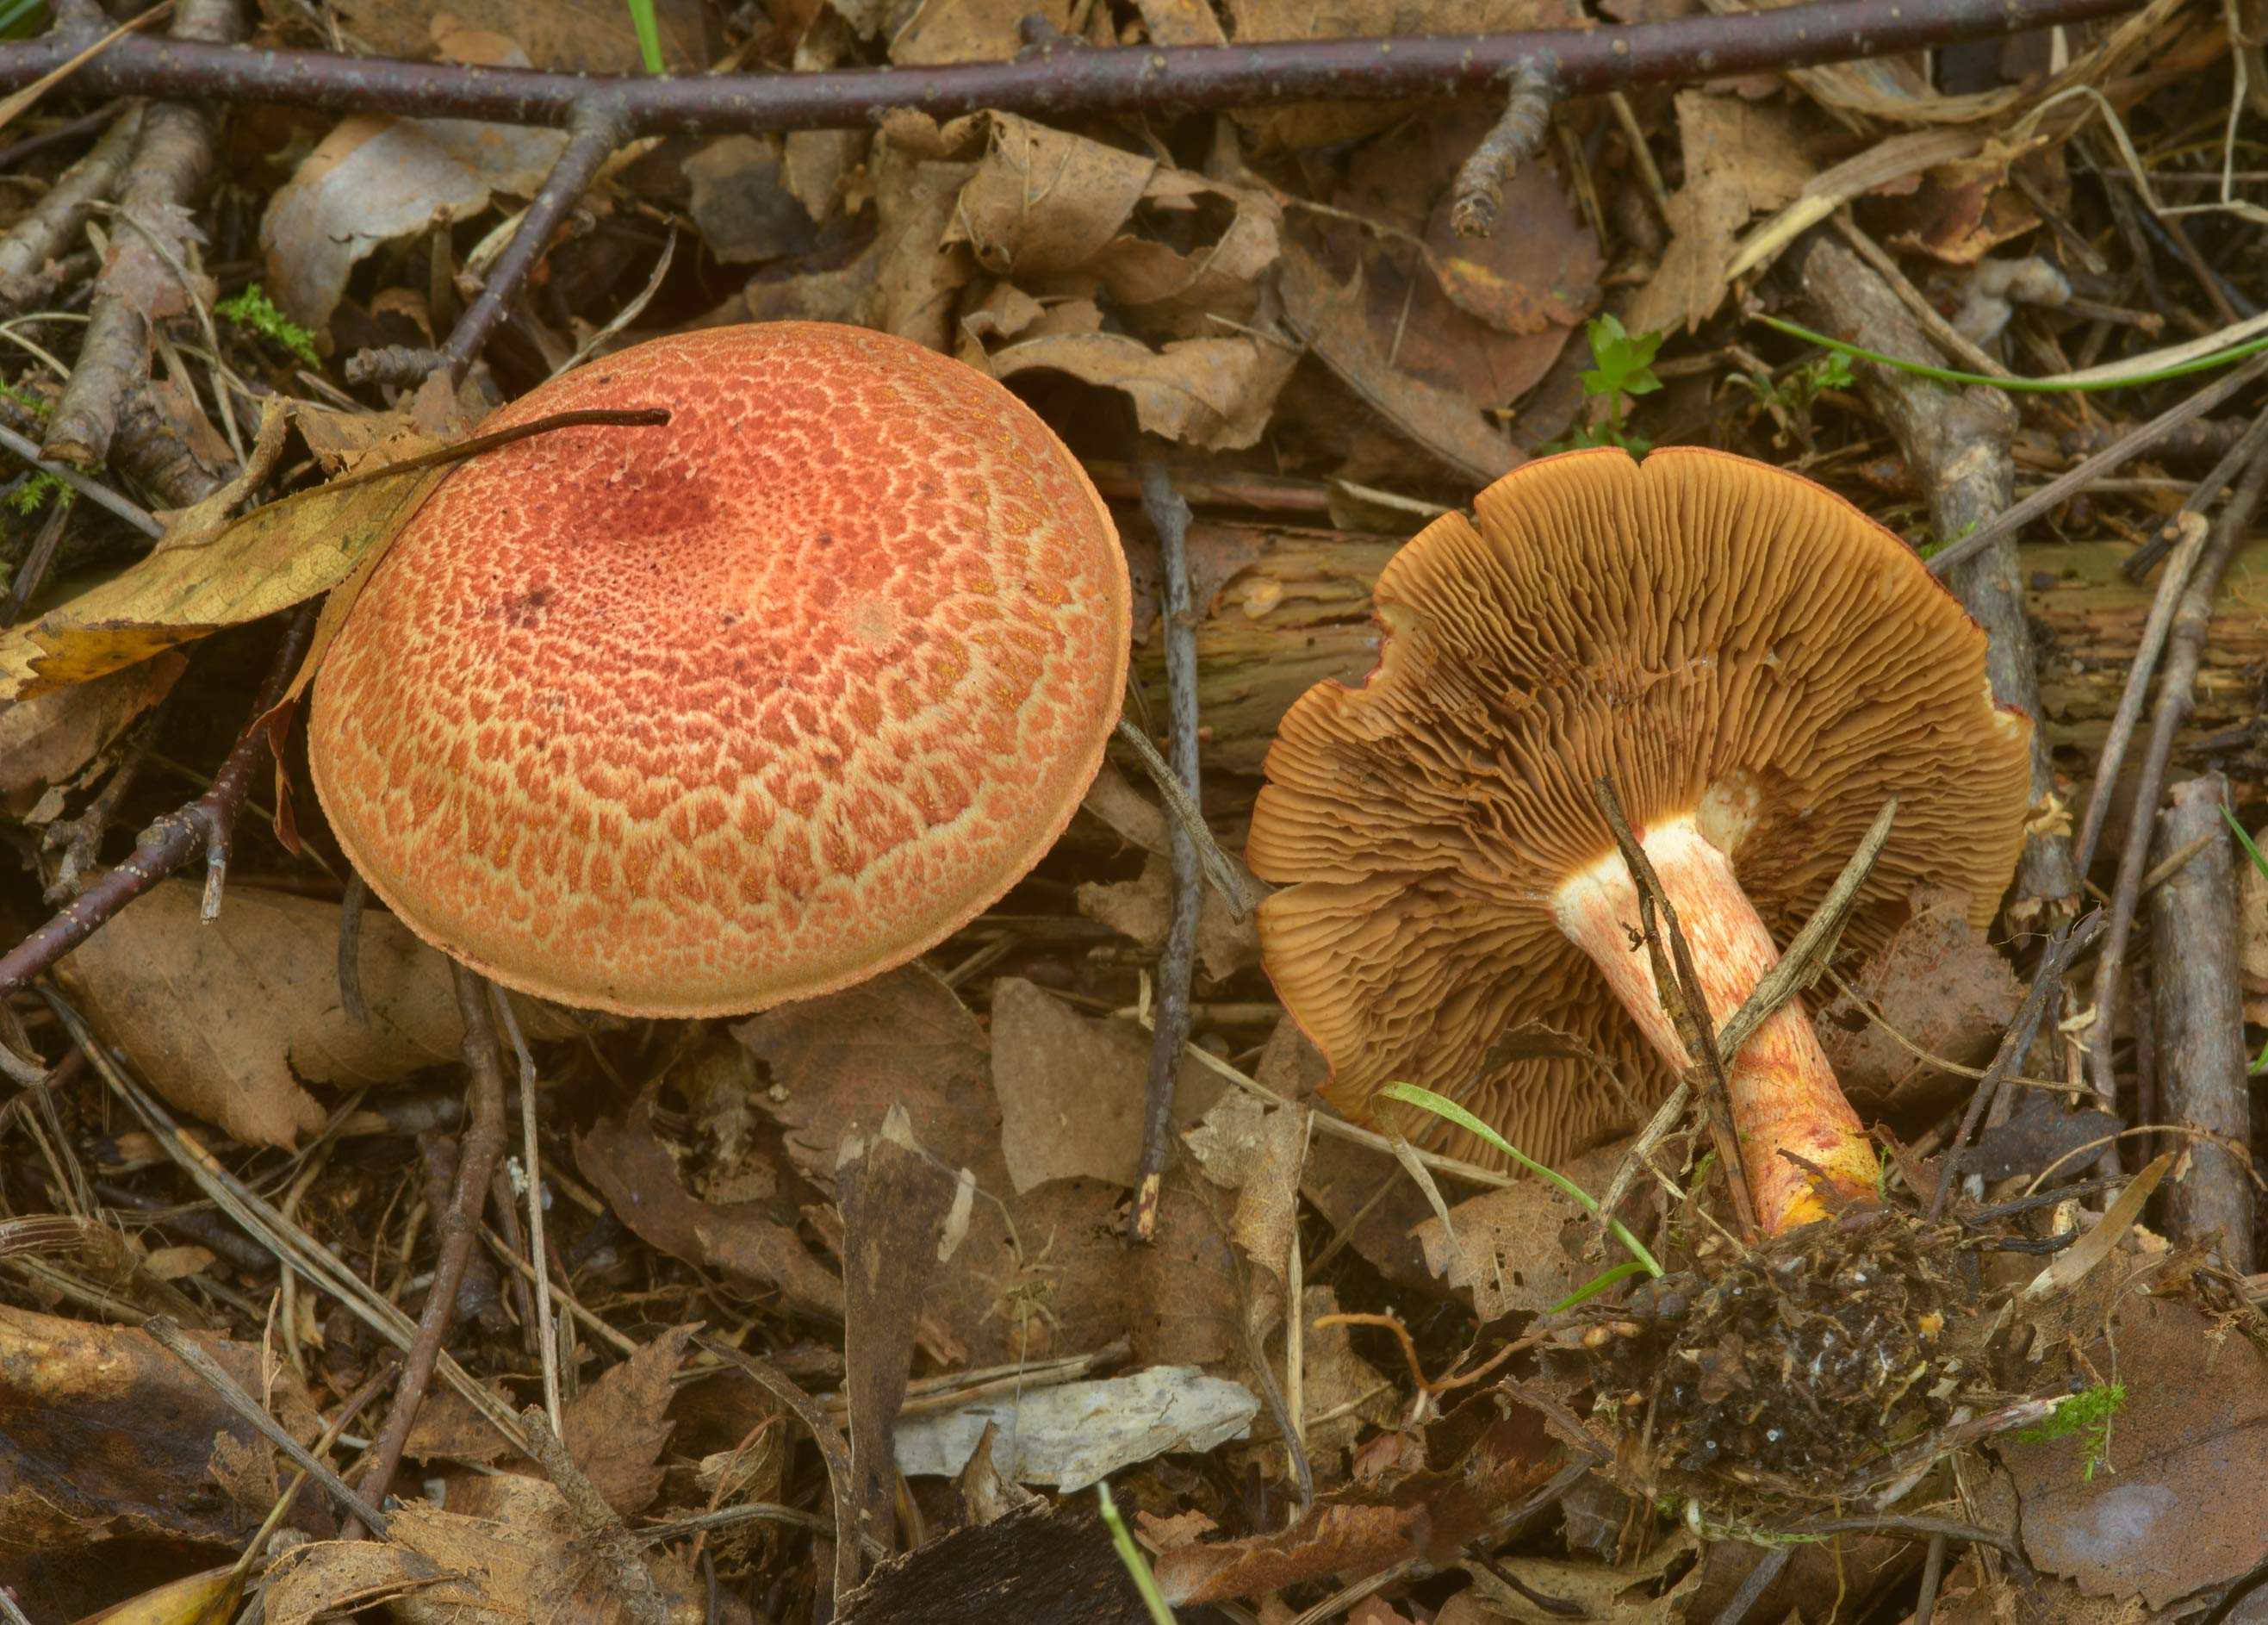 Dappled webcap mushrooms (Cortinarius bolaris) in...north-west from St.Petersburg, Russia